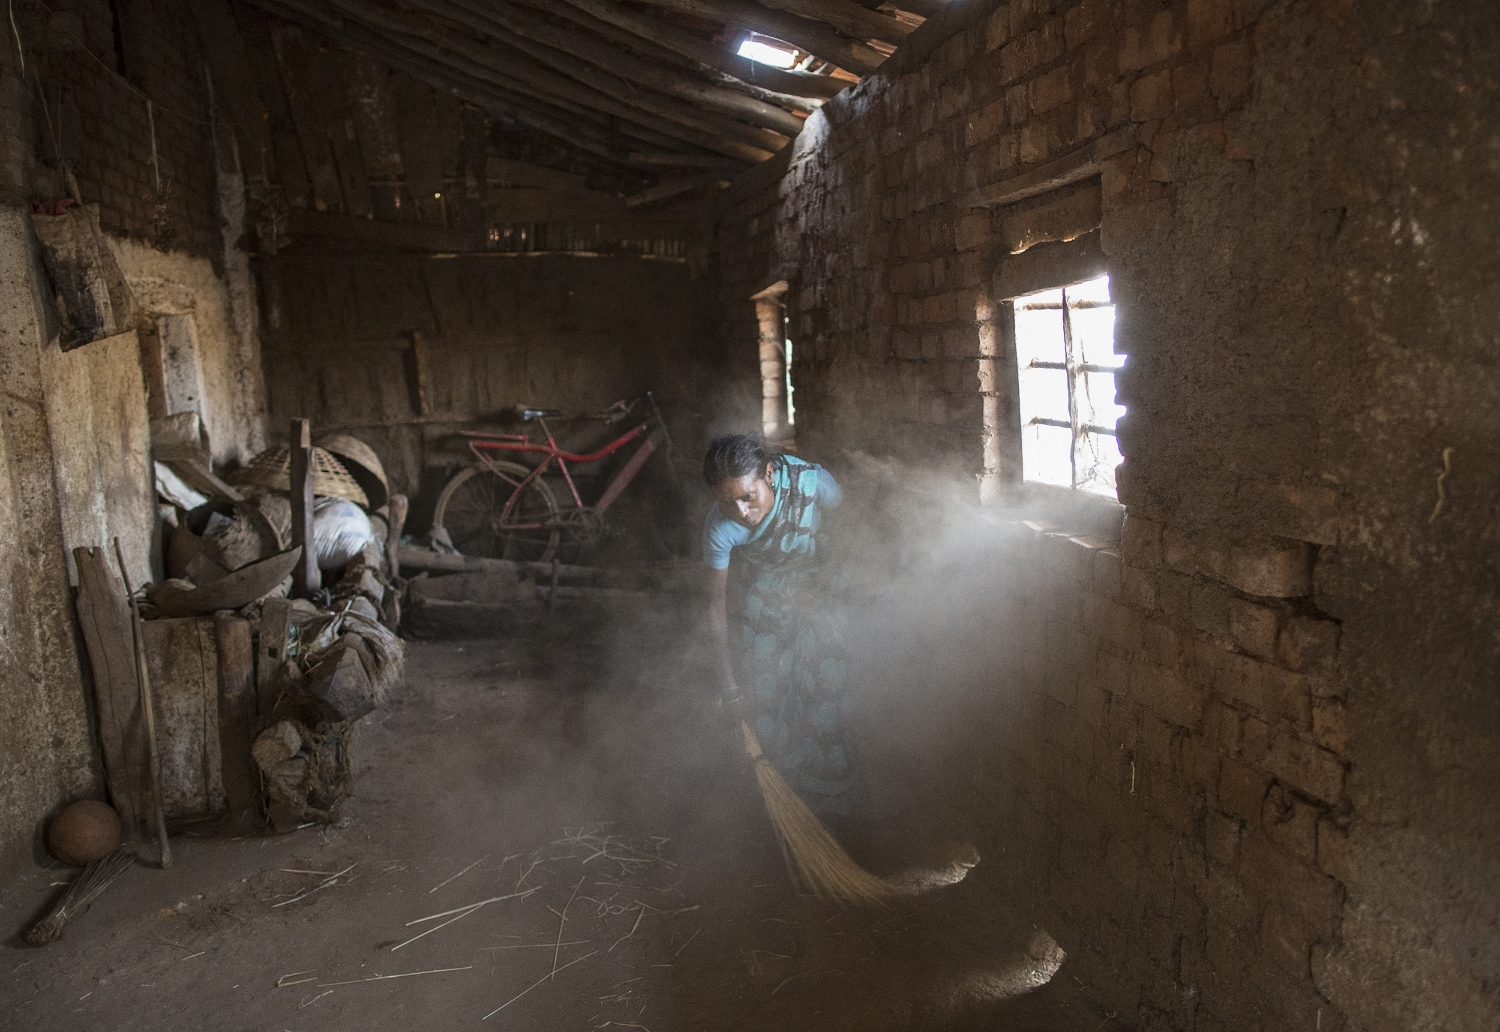 Shivarti, second wife of Namdeo, cleans a room inside their house in Denganmal village.